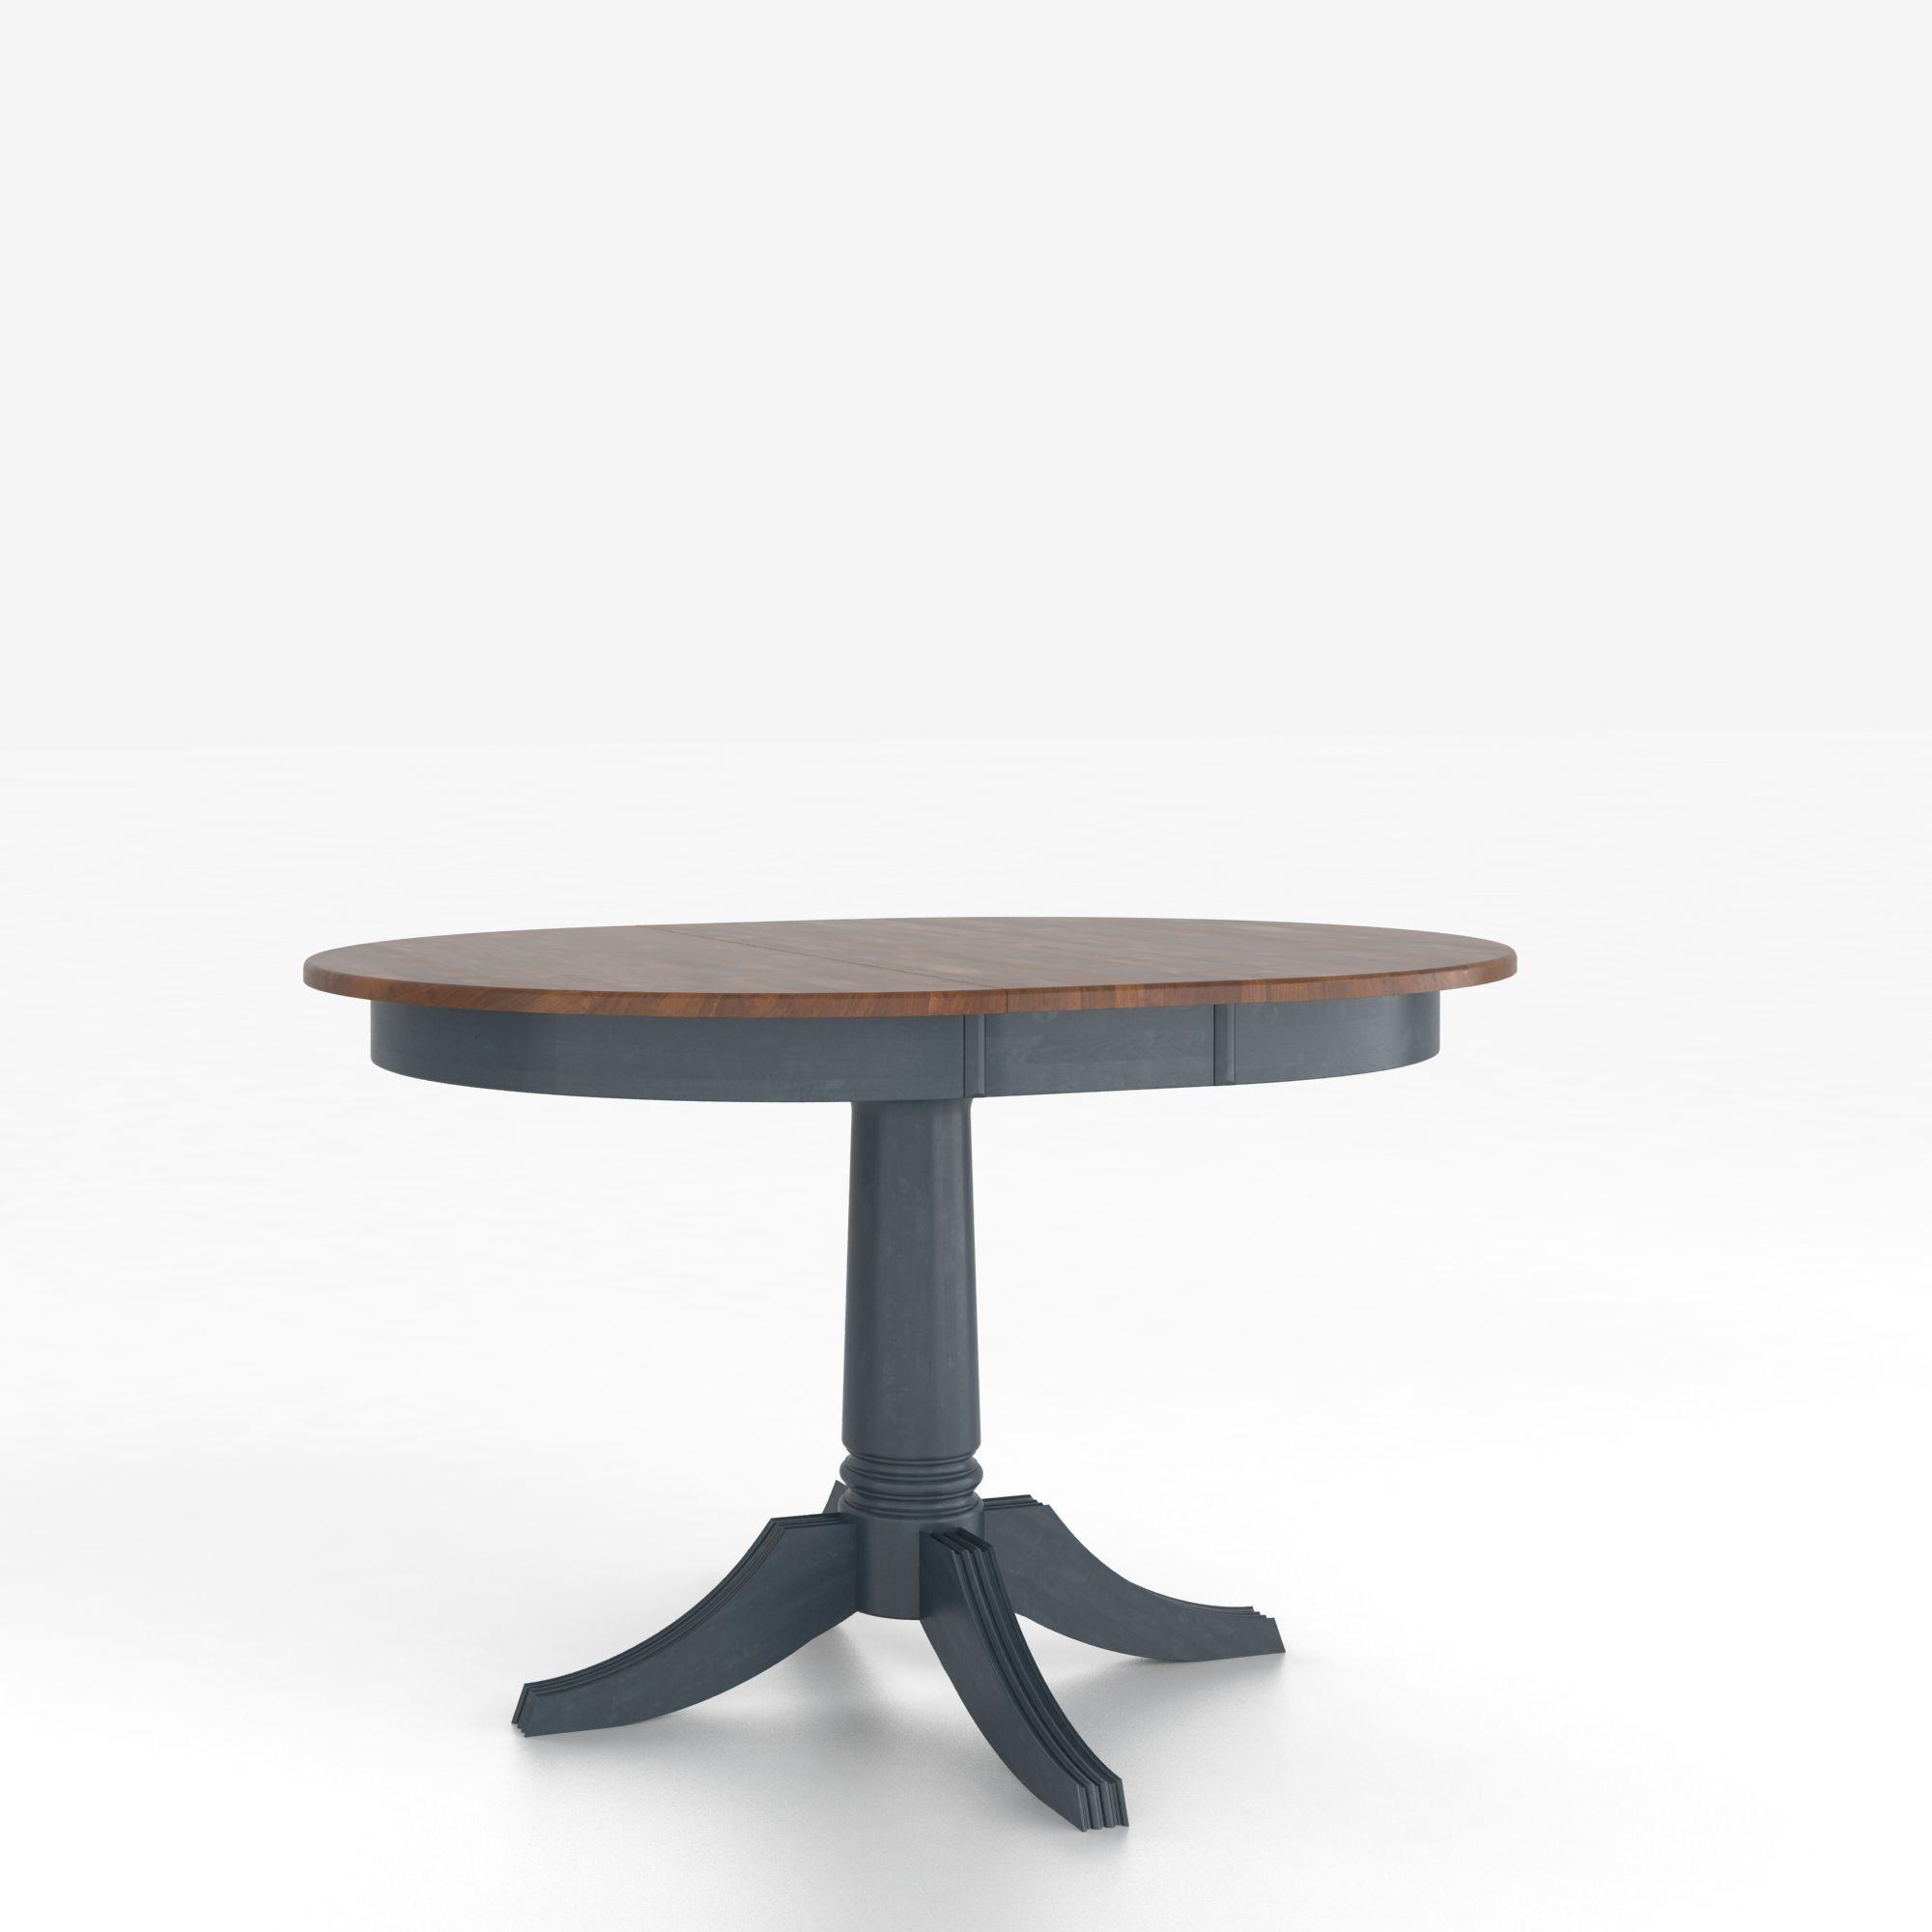 Custom Dining Tables <b>Customizable</b> Round Table w/ Pedestal by Canadel at Dinette Depot